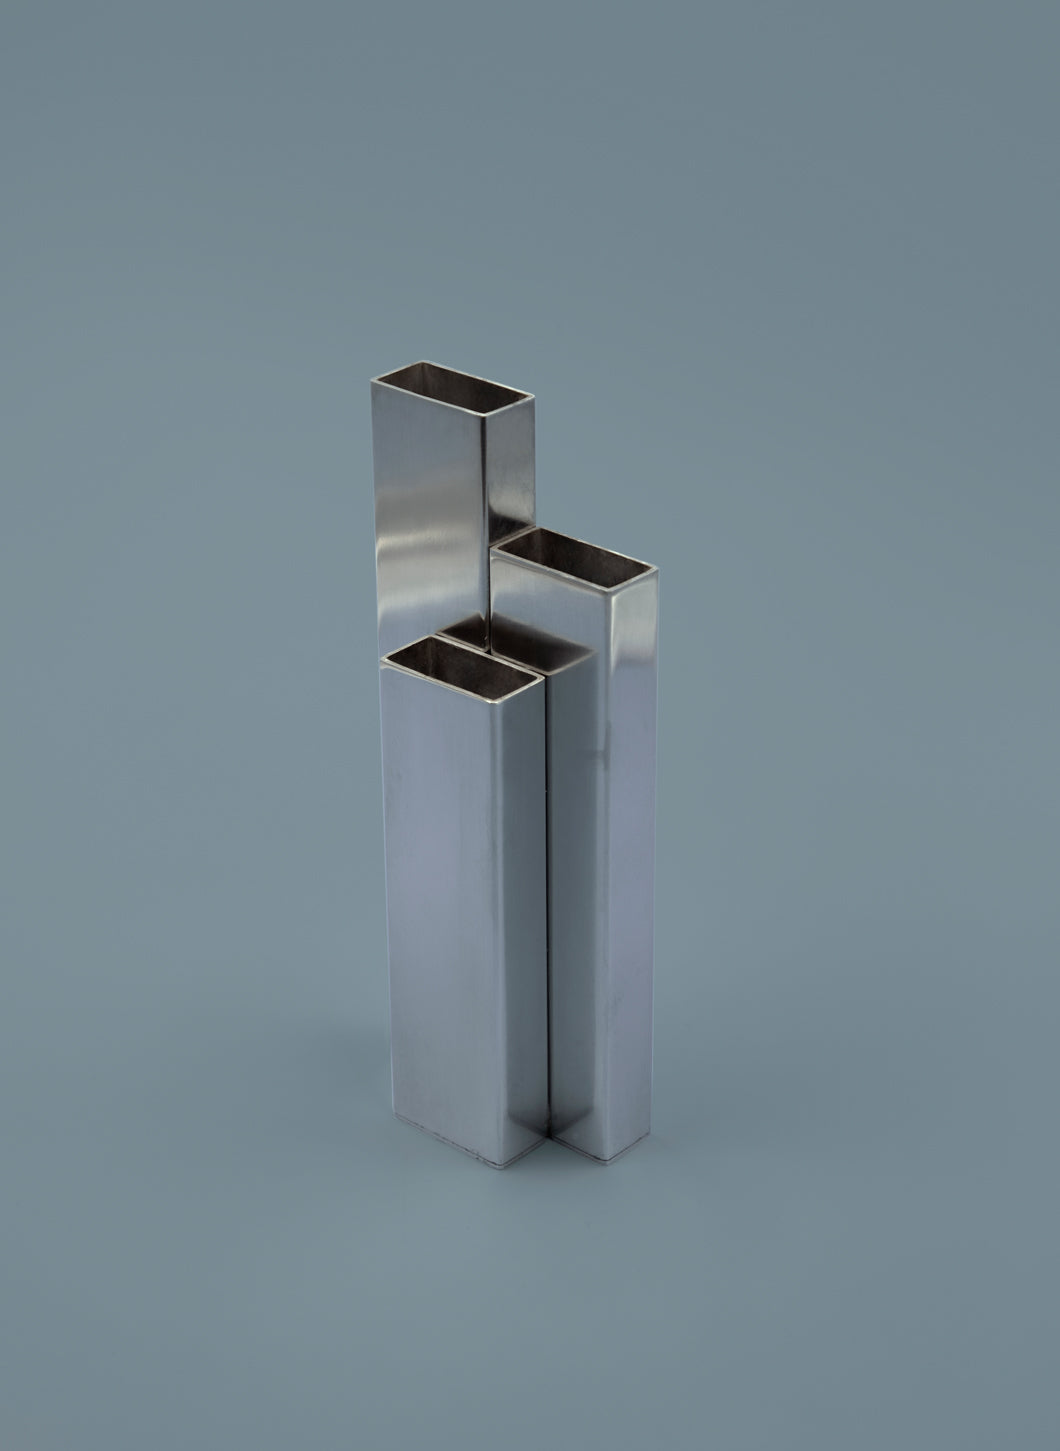 Triglyph Stainless Steel Vase